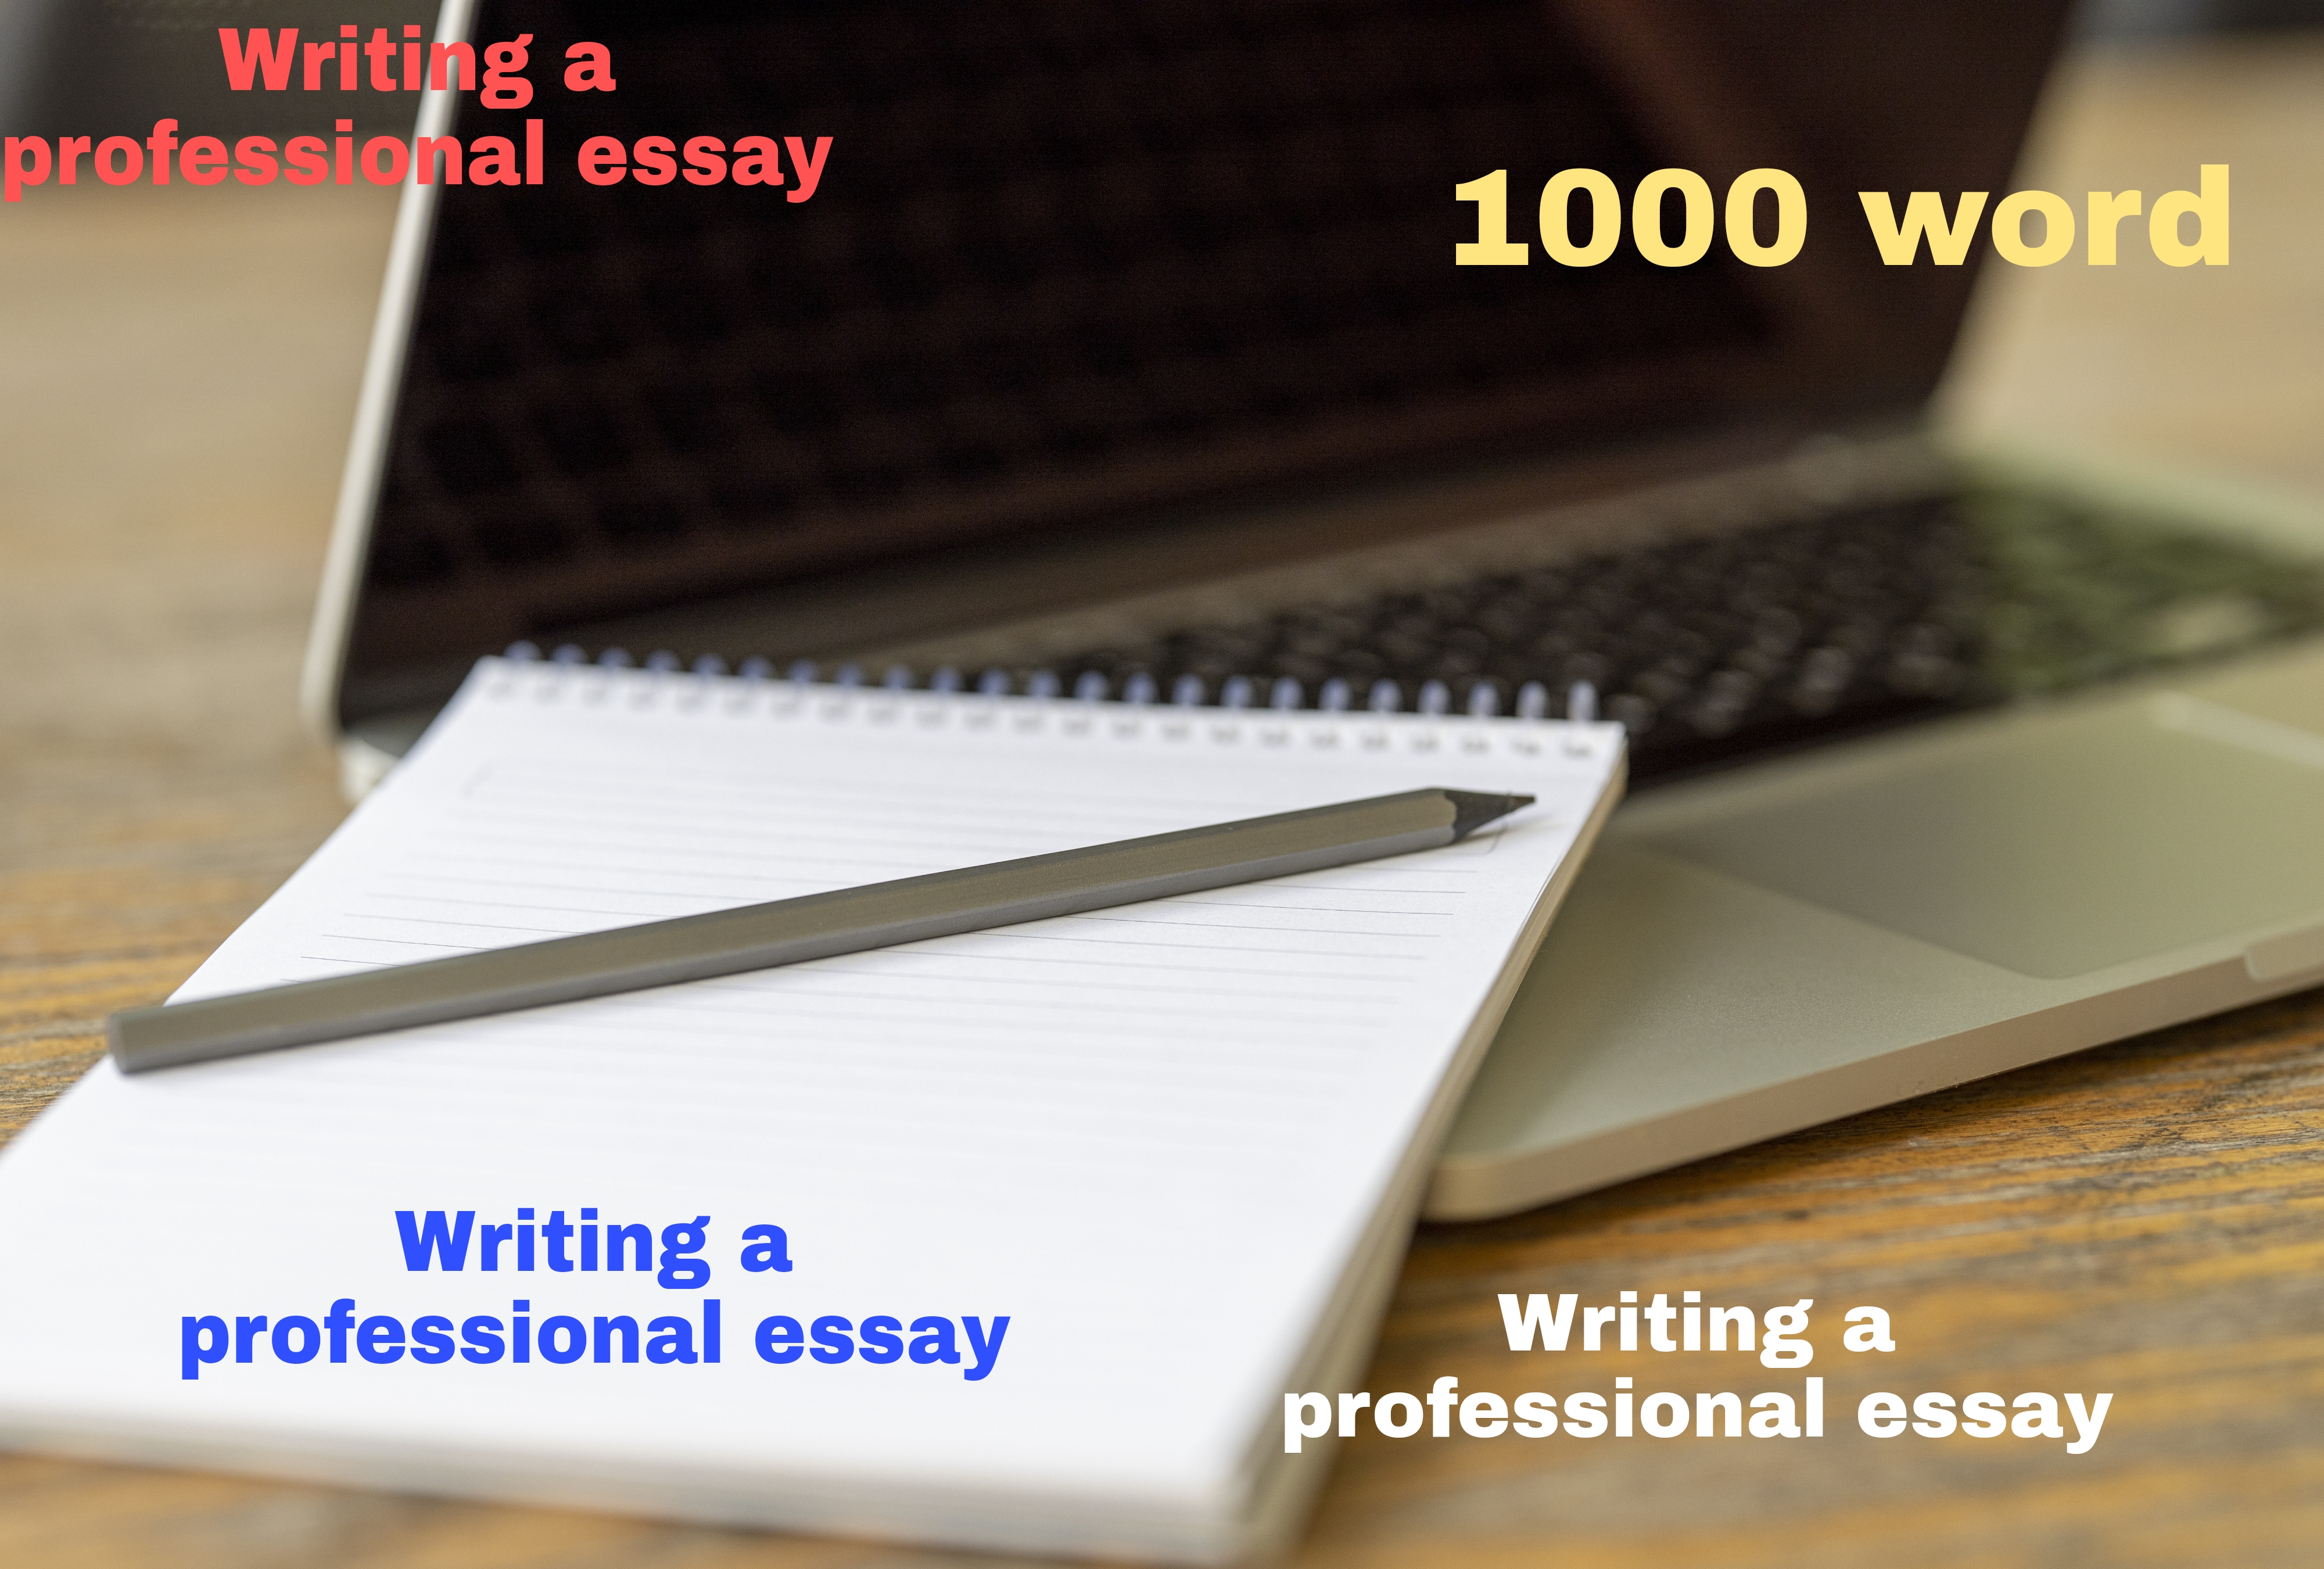 Writing a professional article in all the fields you want You can write a thousand words or more